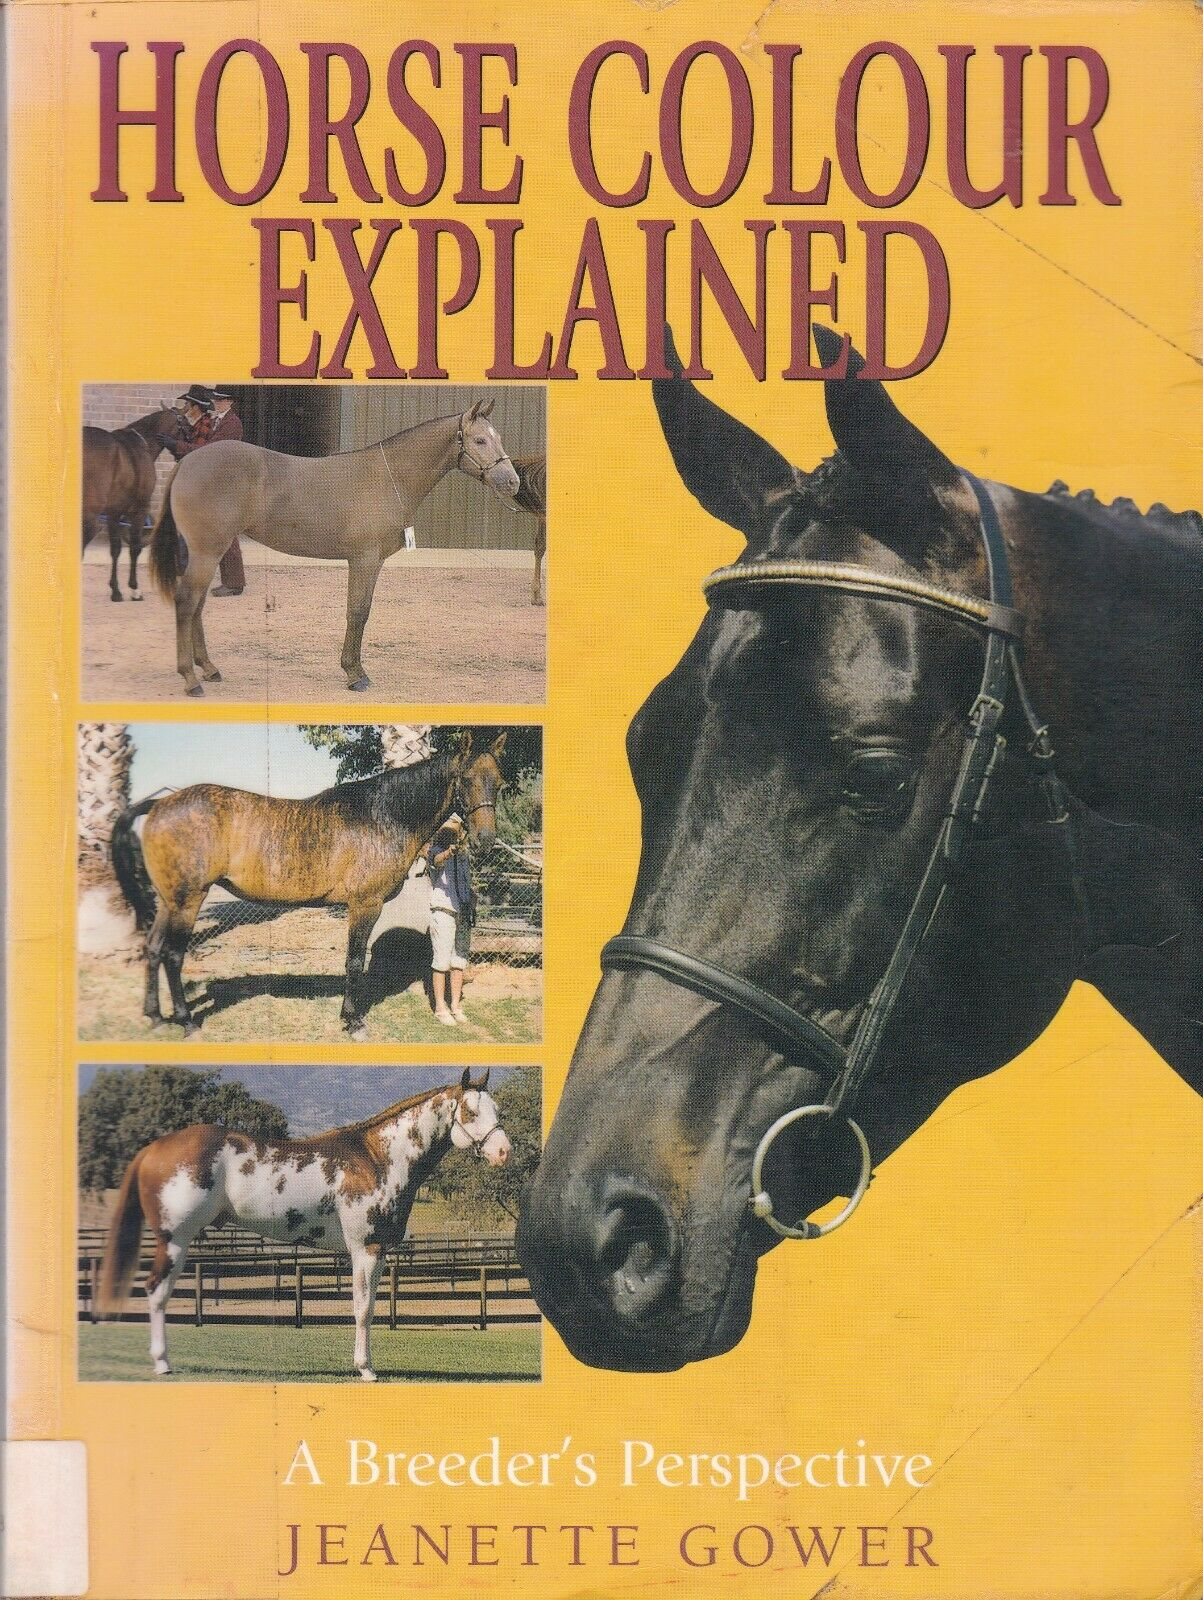 Horse Colour Explained A Breeder's Perspective by Jeanette Gower  Paperback, 18